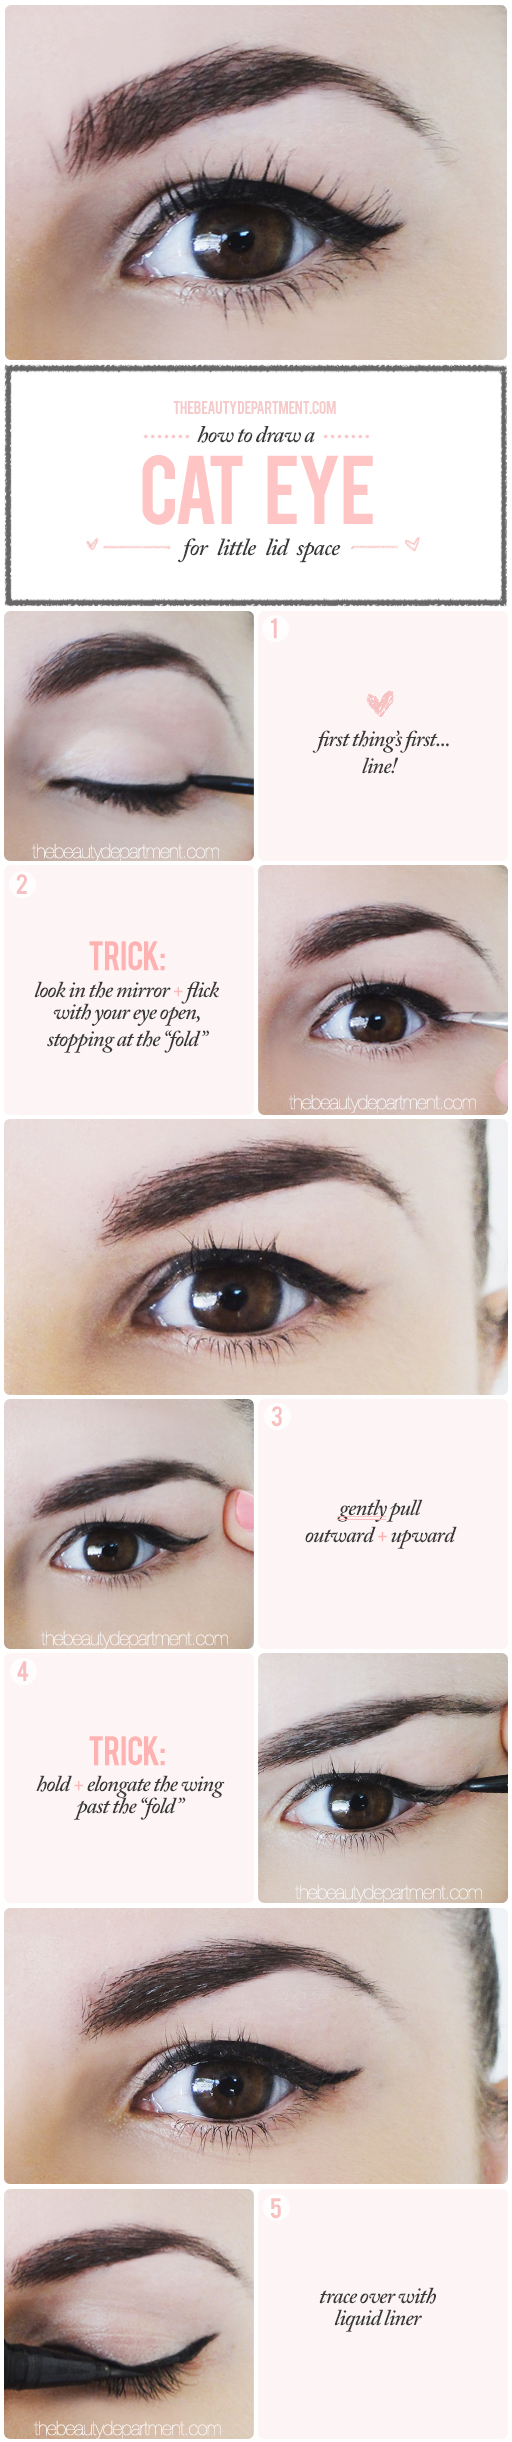 The beauty department your daily dose of pretty winged liner for winged liner for a droopy lid tutorial baditri Image collections